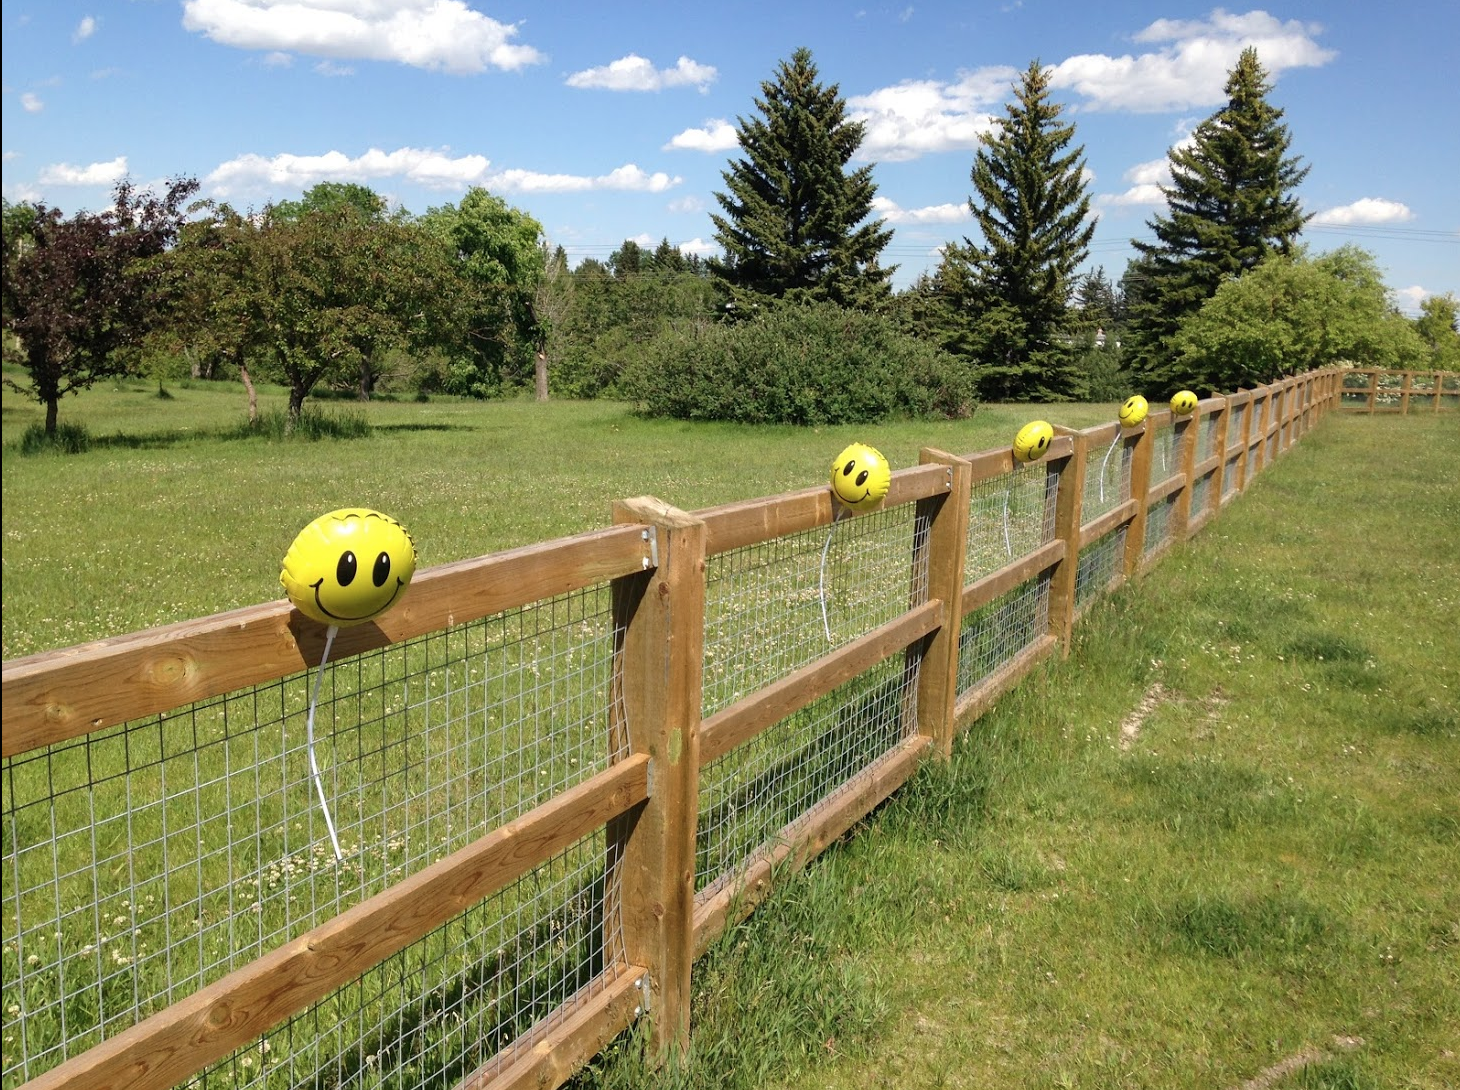 A new fence dividing River Park into an off-leash and on-leash area was part of the controversial renovations to the park.